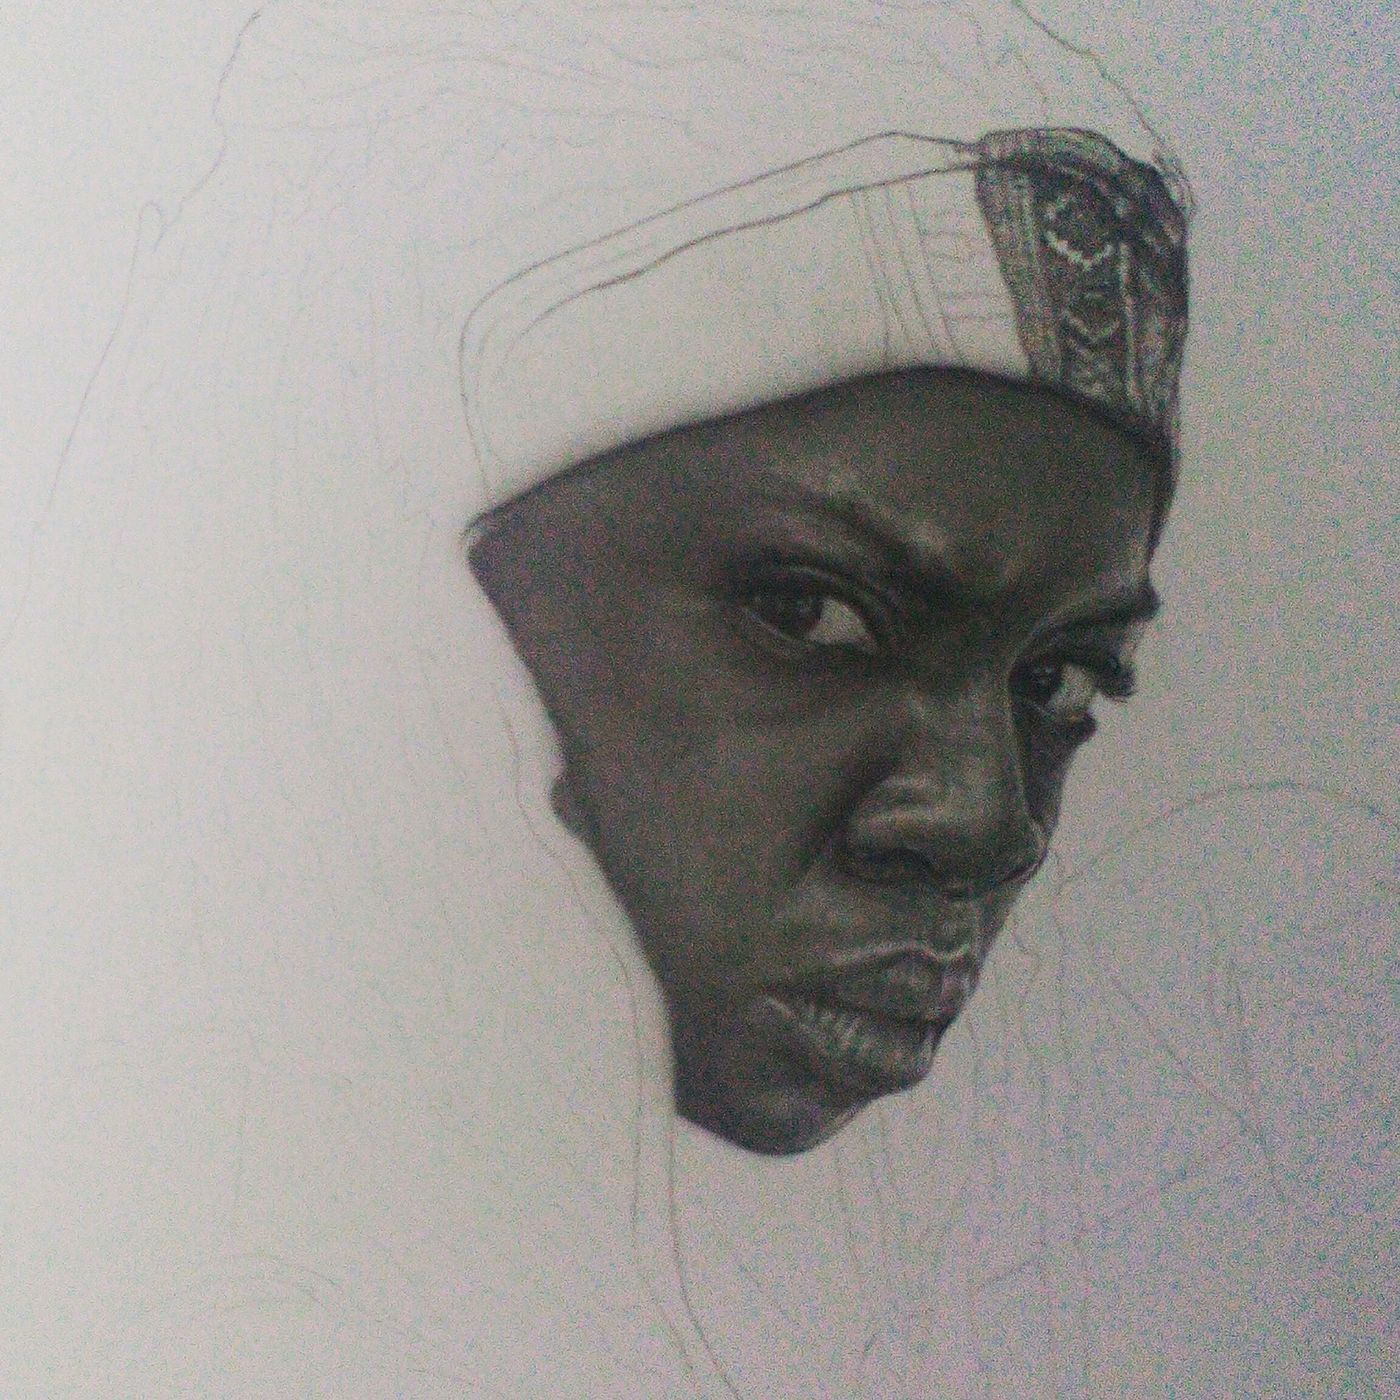 Way 2 dark for a good photo but a little progress in my drawing of michonne Thewalkingdead Michonne Walking Dead Michonne Sword Drawing My Drawing Fanartdrawings